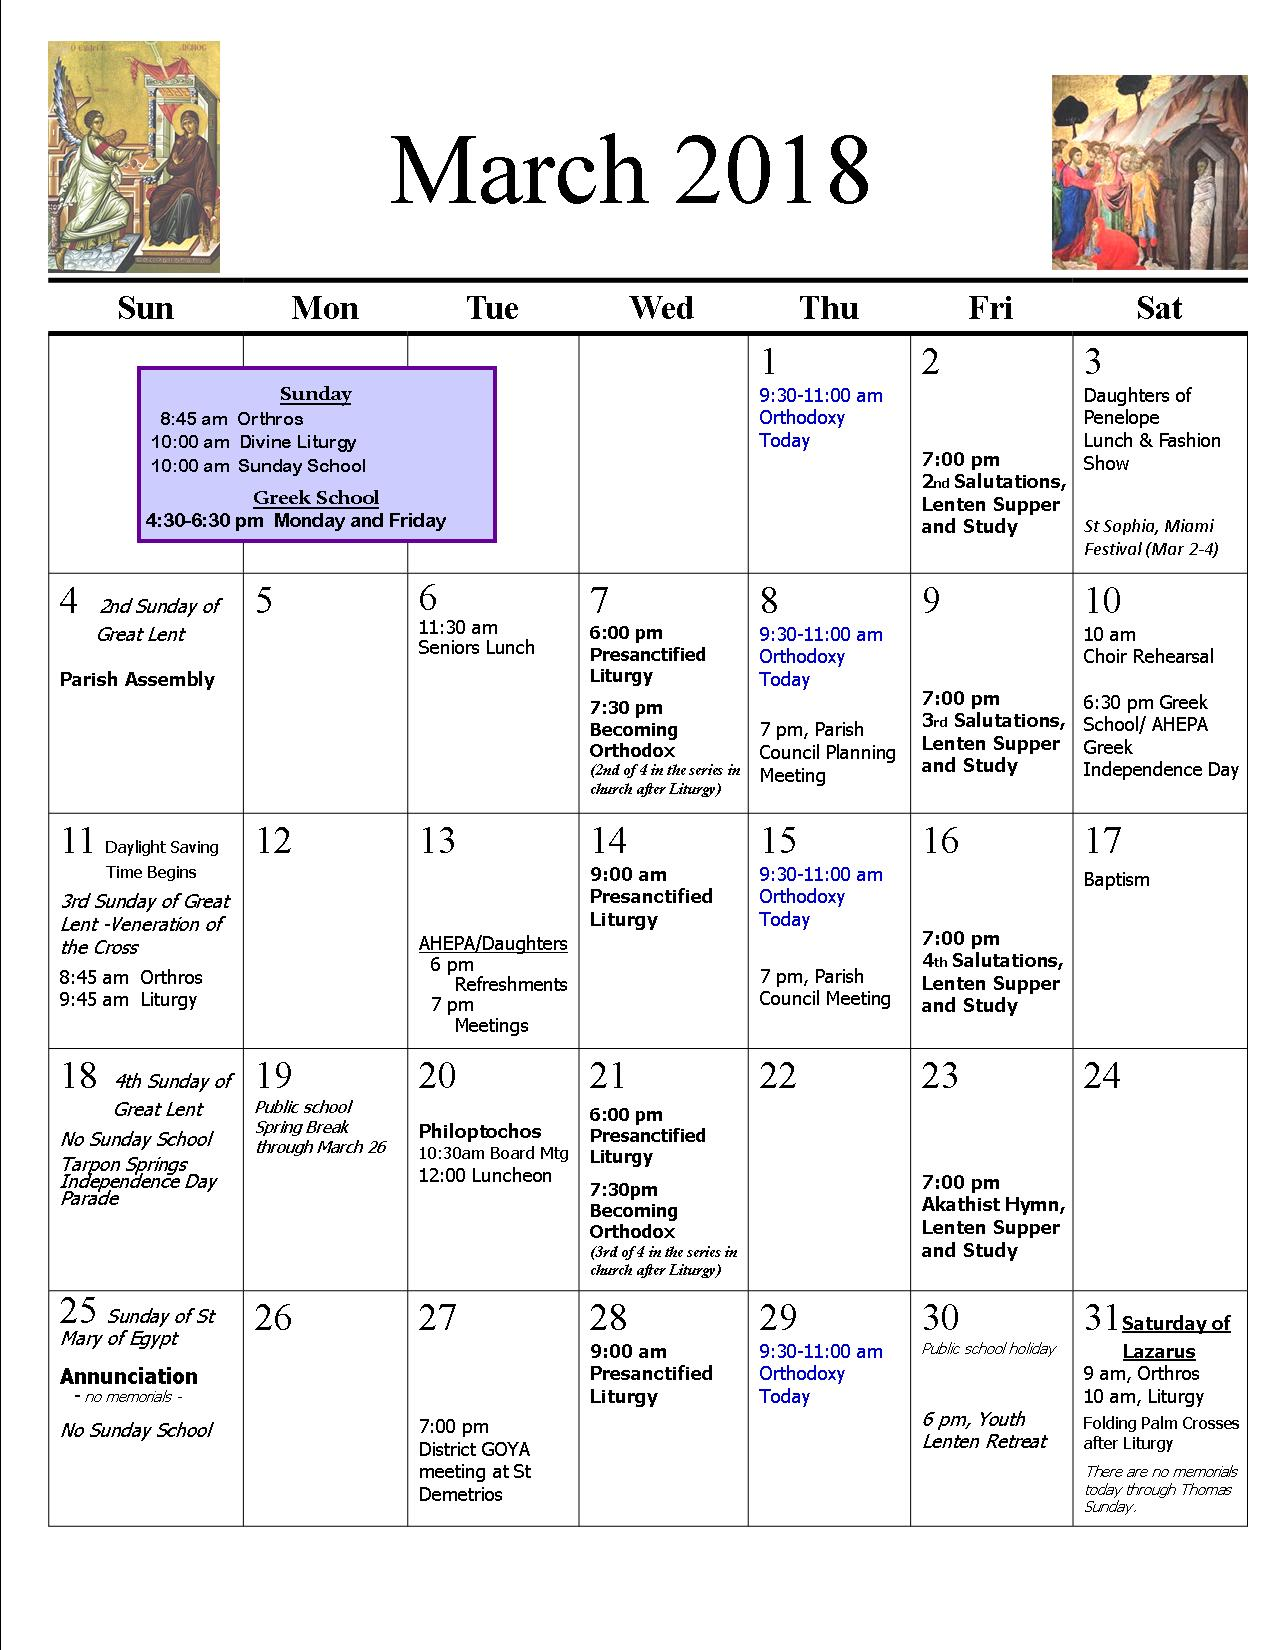 March 2018 Parish Calendar revised